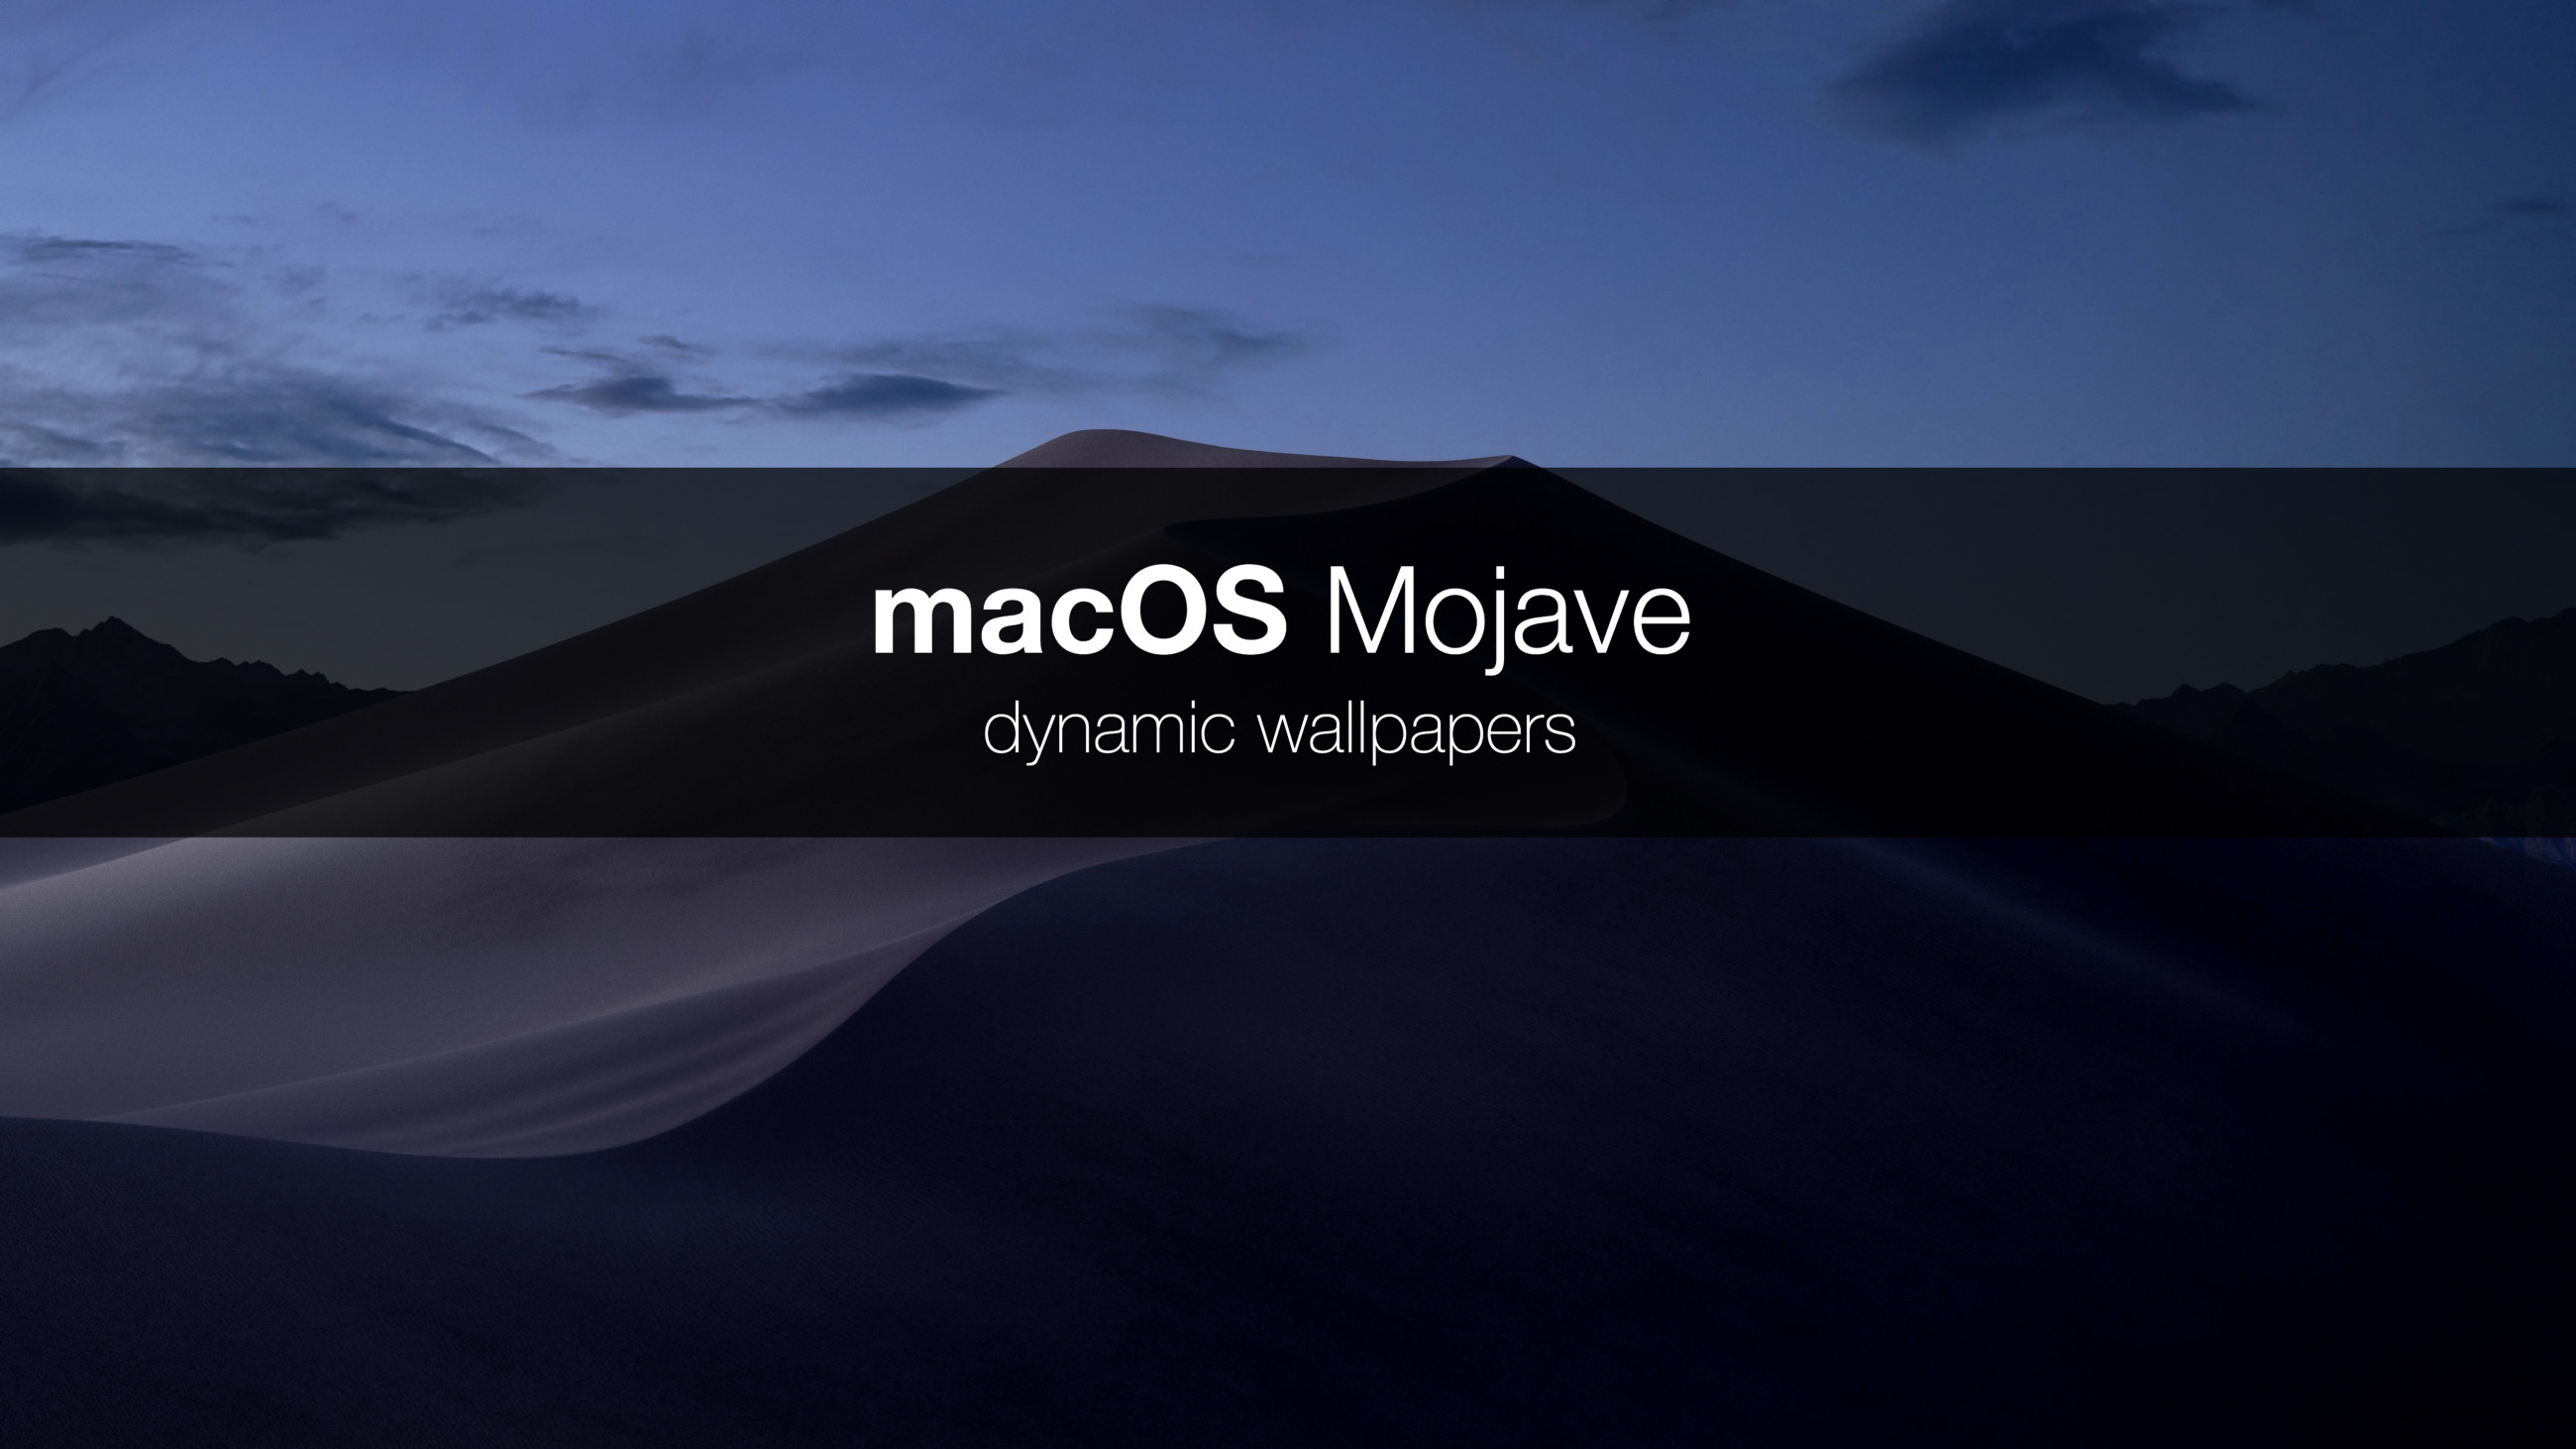 2600x1462 How Apple built dynamic wallpapers? And is it possible to create your own dynamic  wallpaper for macOS? I spent some time because I would like to answer to ...